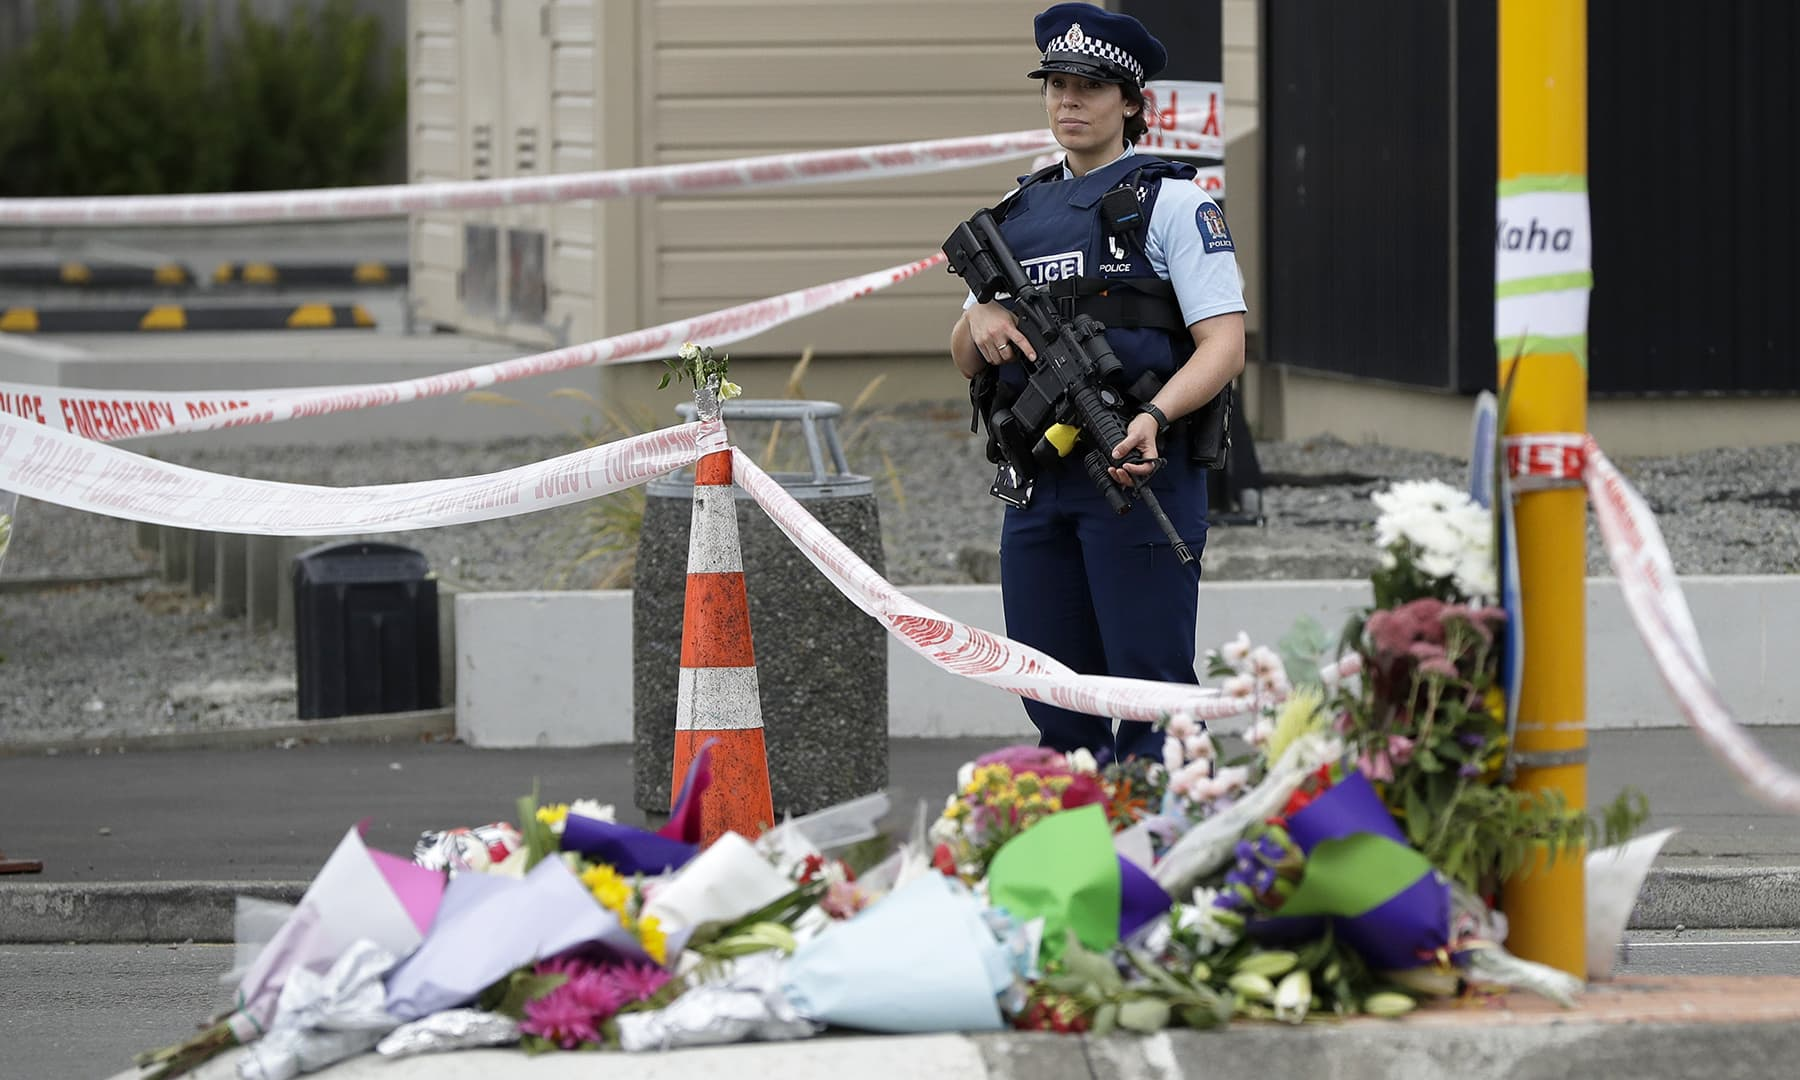 Police stand by a collection of flowers near the Linwood Mosque in Christchurch, New Zealand, Saturday, March 16, 2019. — AP